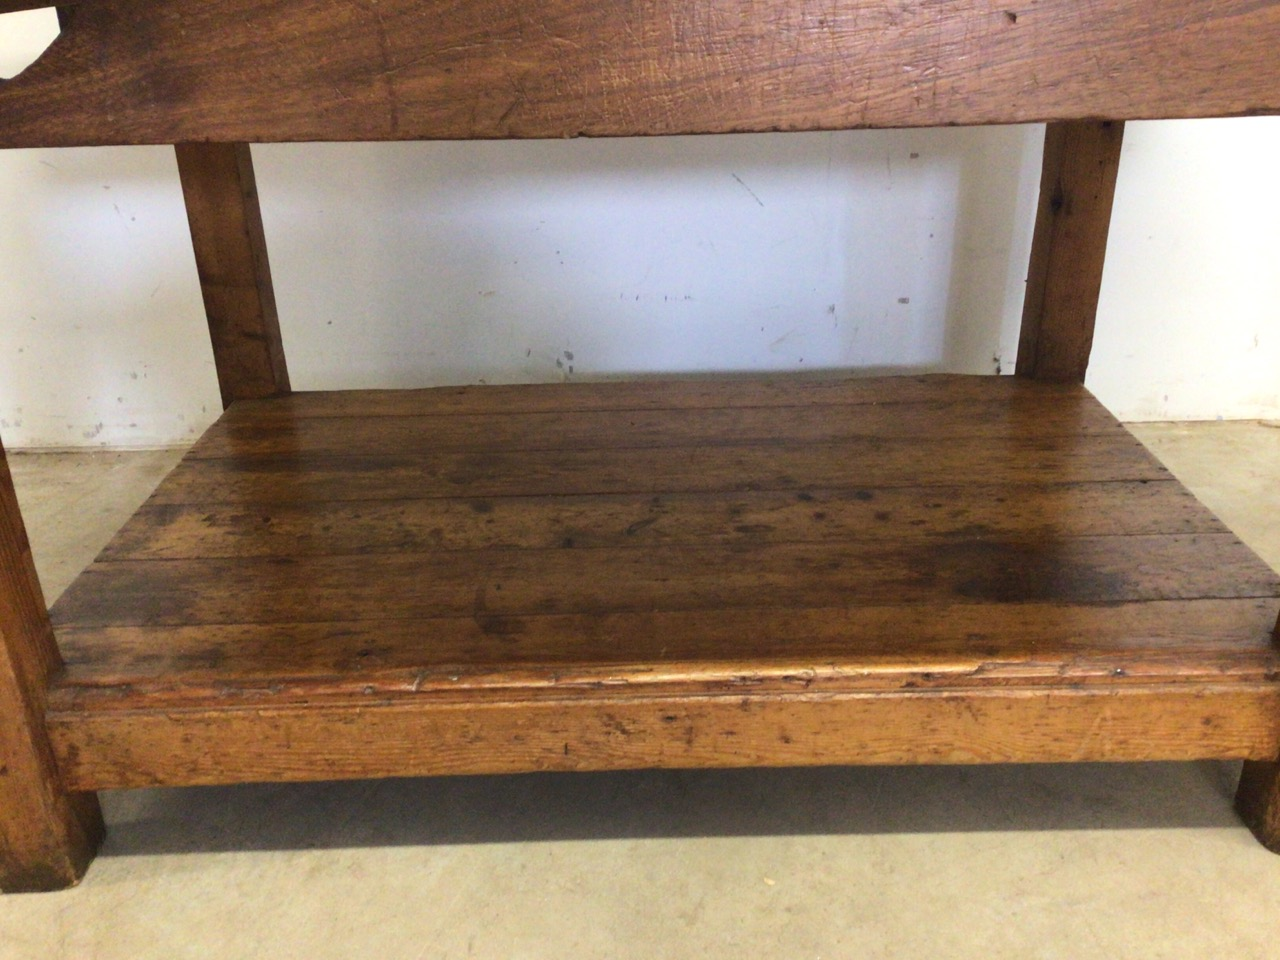 An antique Hardwood workbench with two vices and a lower shelf. W:140cm x D:85cm x H:78cm - Image 4 of 6